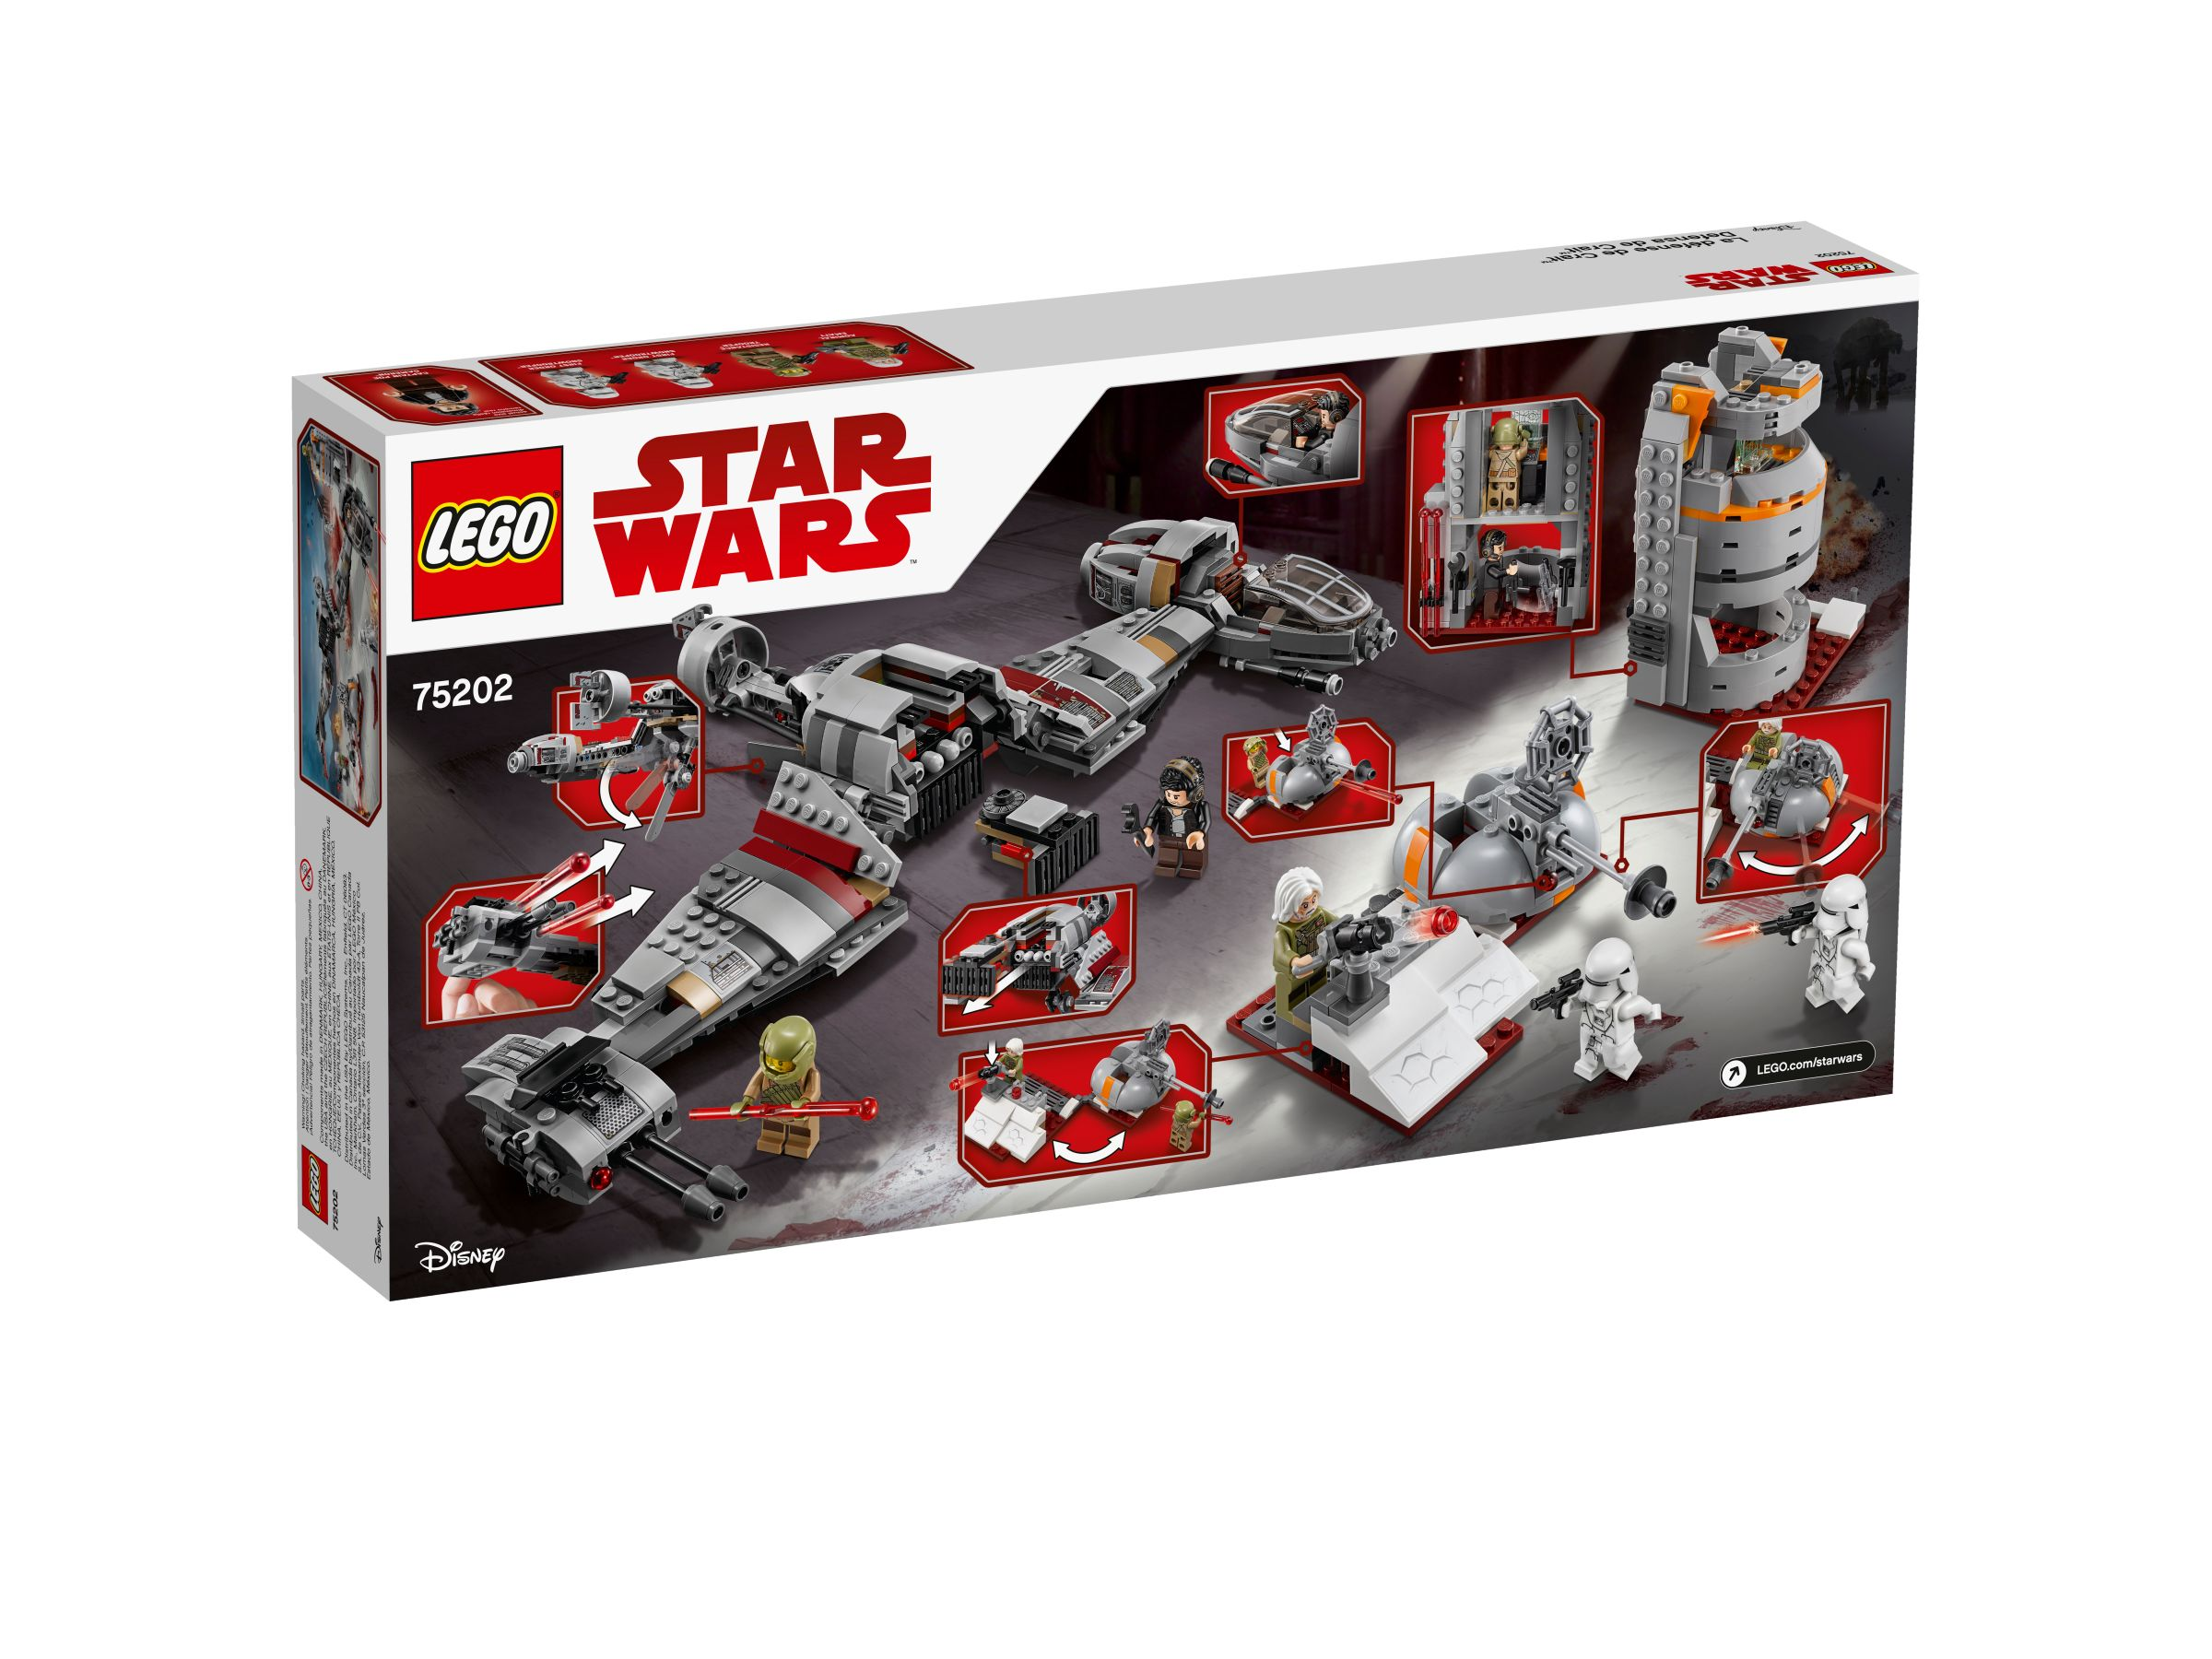 LEGO Star Wars 75202 Defense of Crait™ LEGO_75202_alt2.jpg